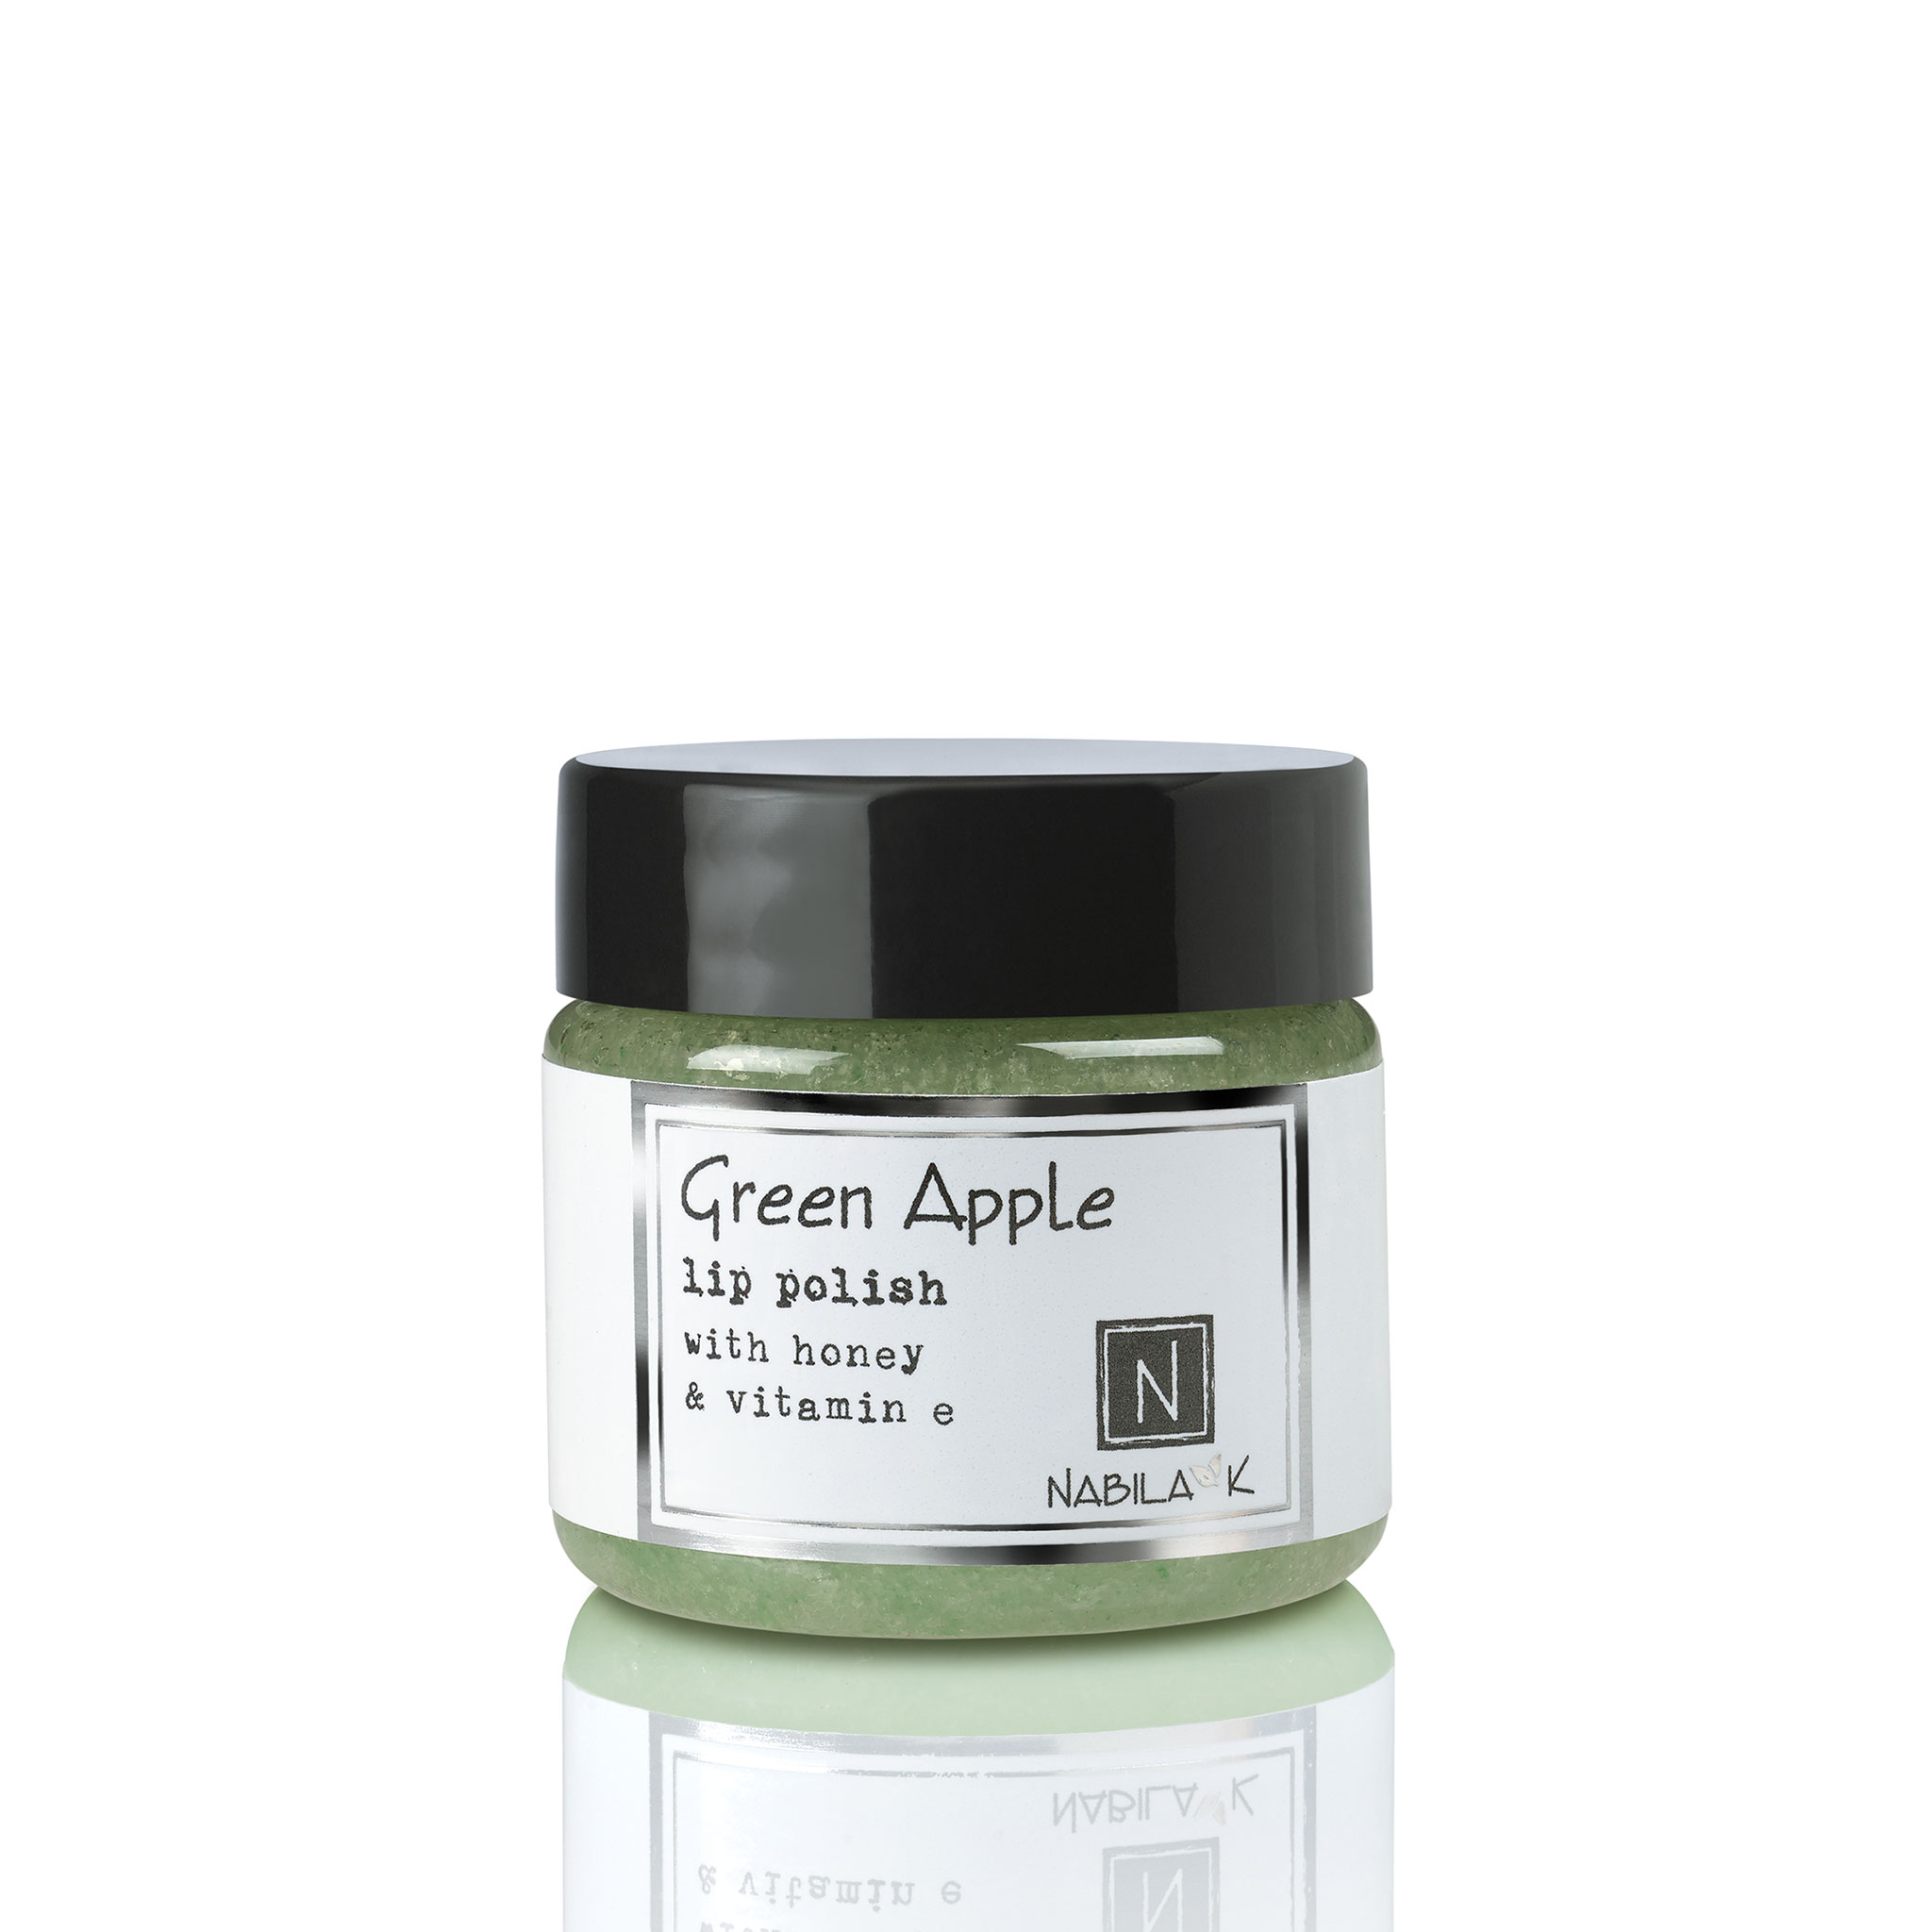 Green Apple lip scrub with honey & vitamin e. Great for promoting healthy, kissable lips!